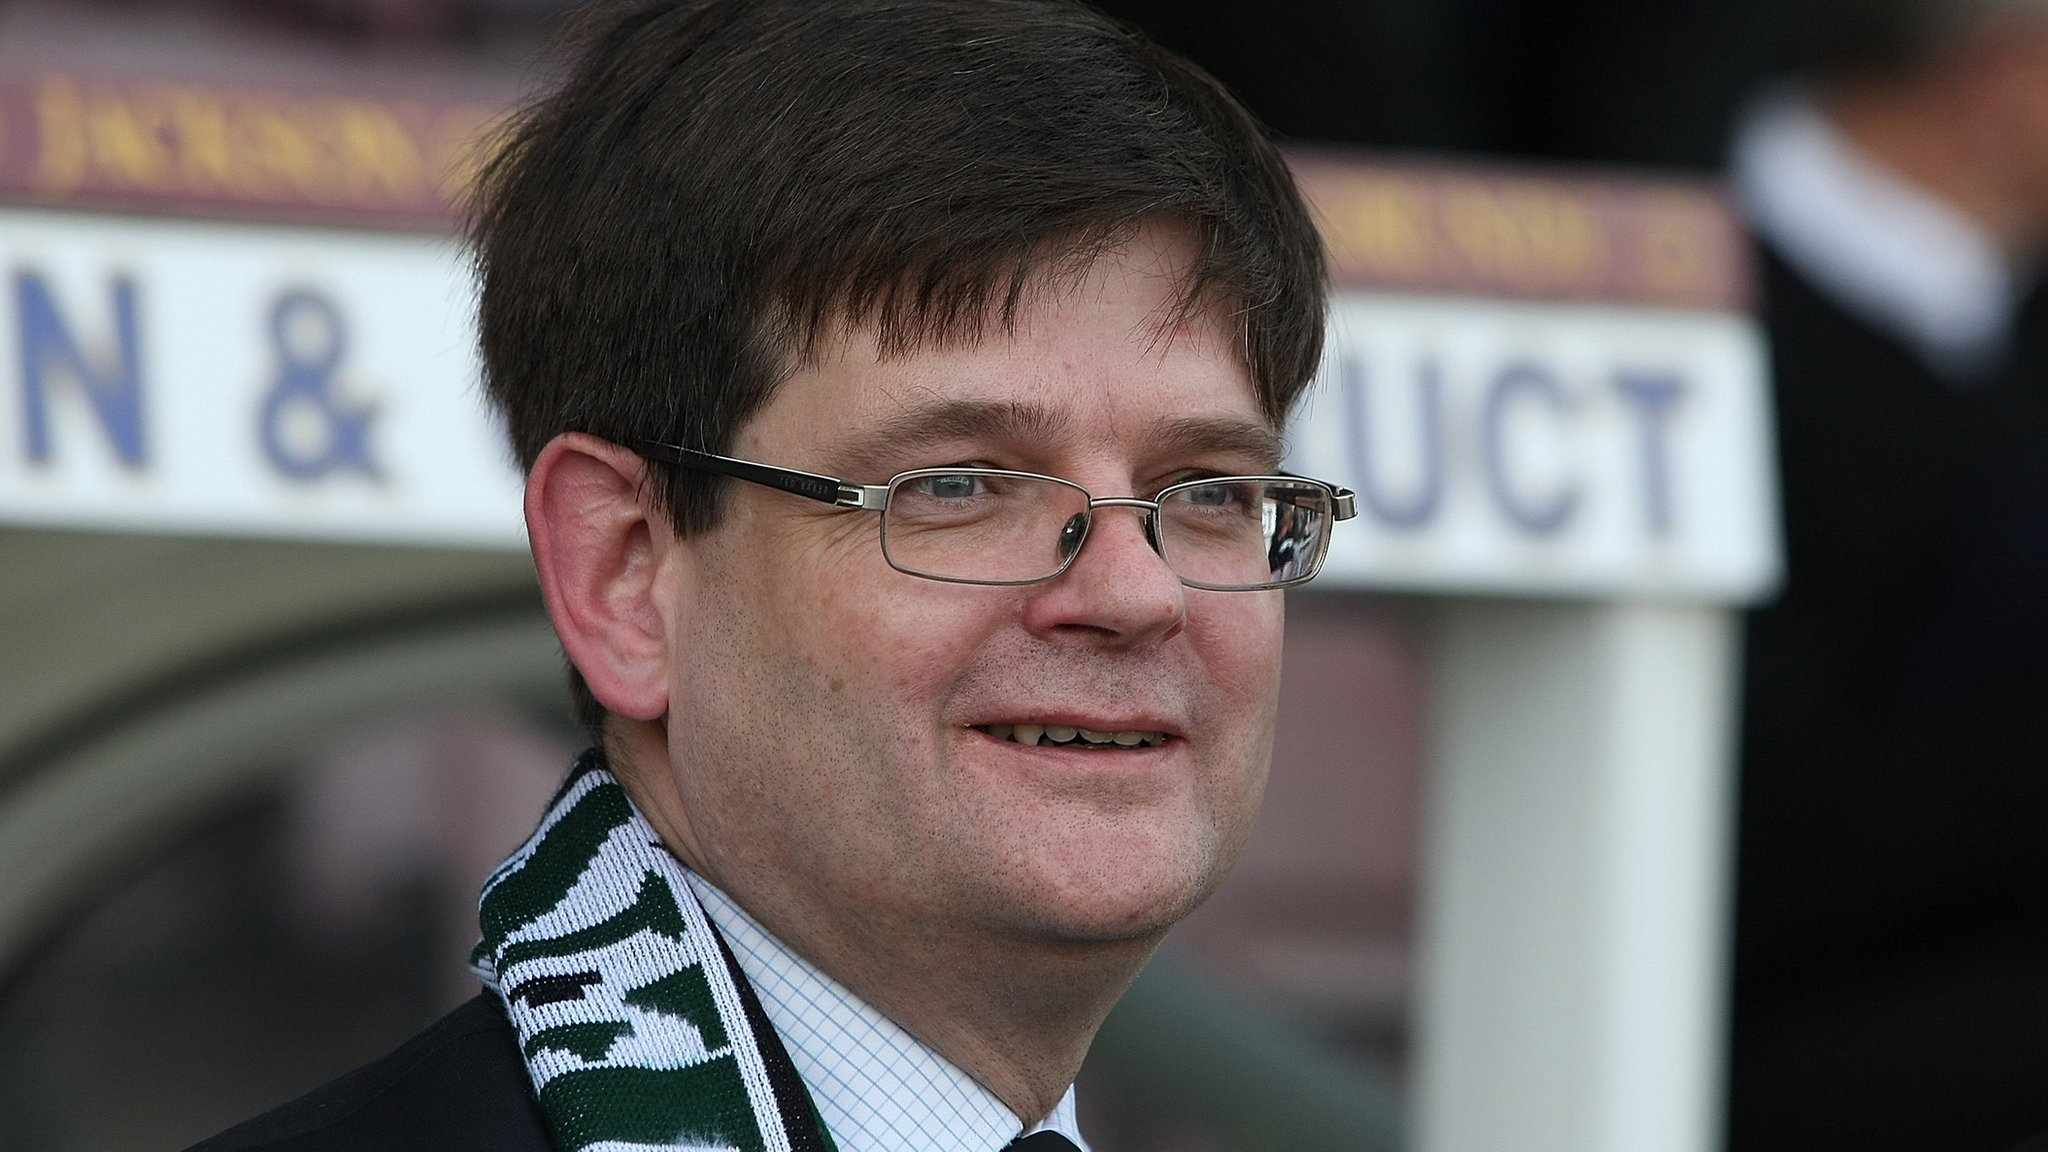 'He gave us back our pride' - Brent to step down as Argyle chairman